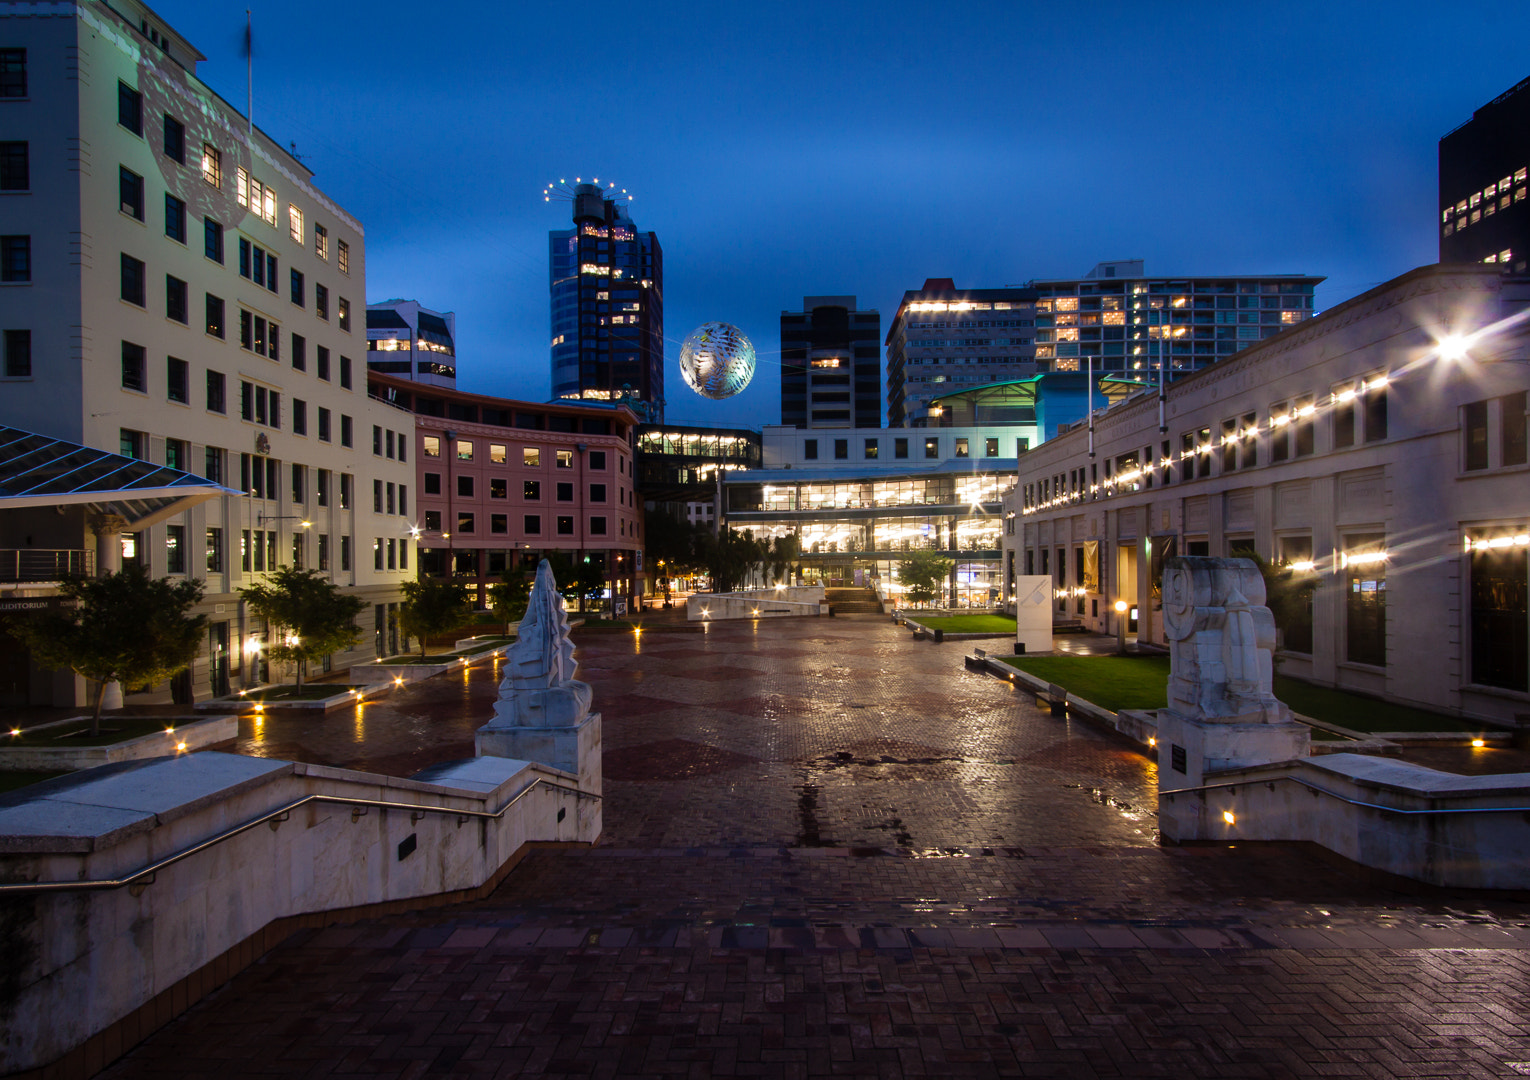 Photograph Civic Square by David Arthur on 500px